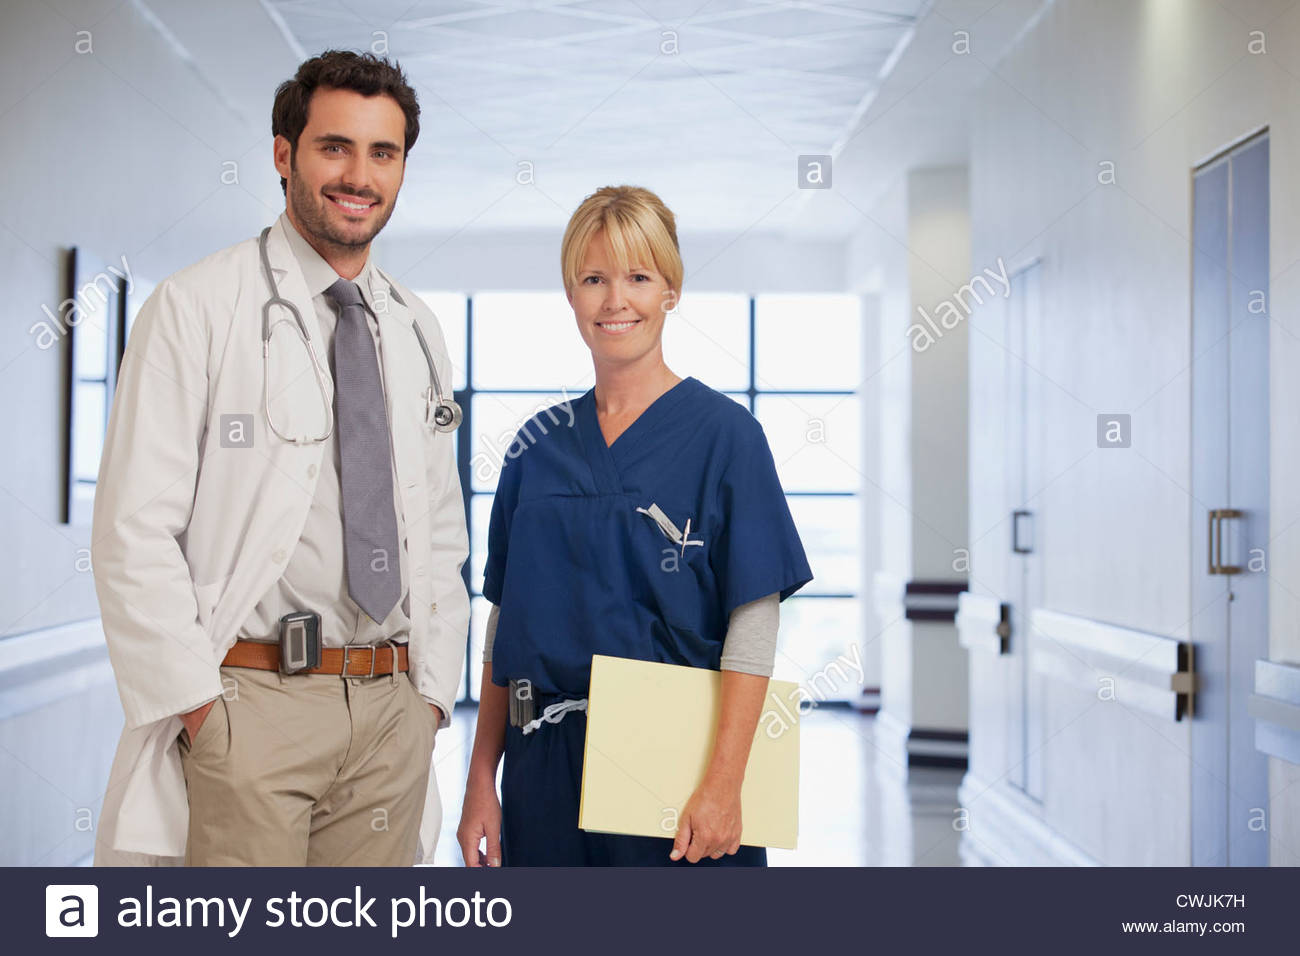 Portrait of smiling doctor and nurse in hospital corridor Stock Photo